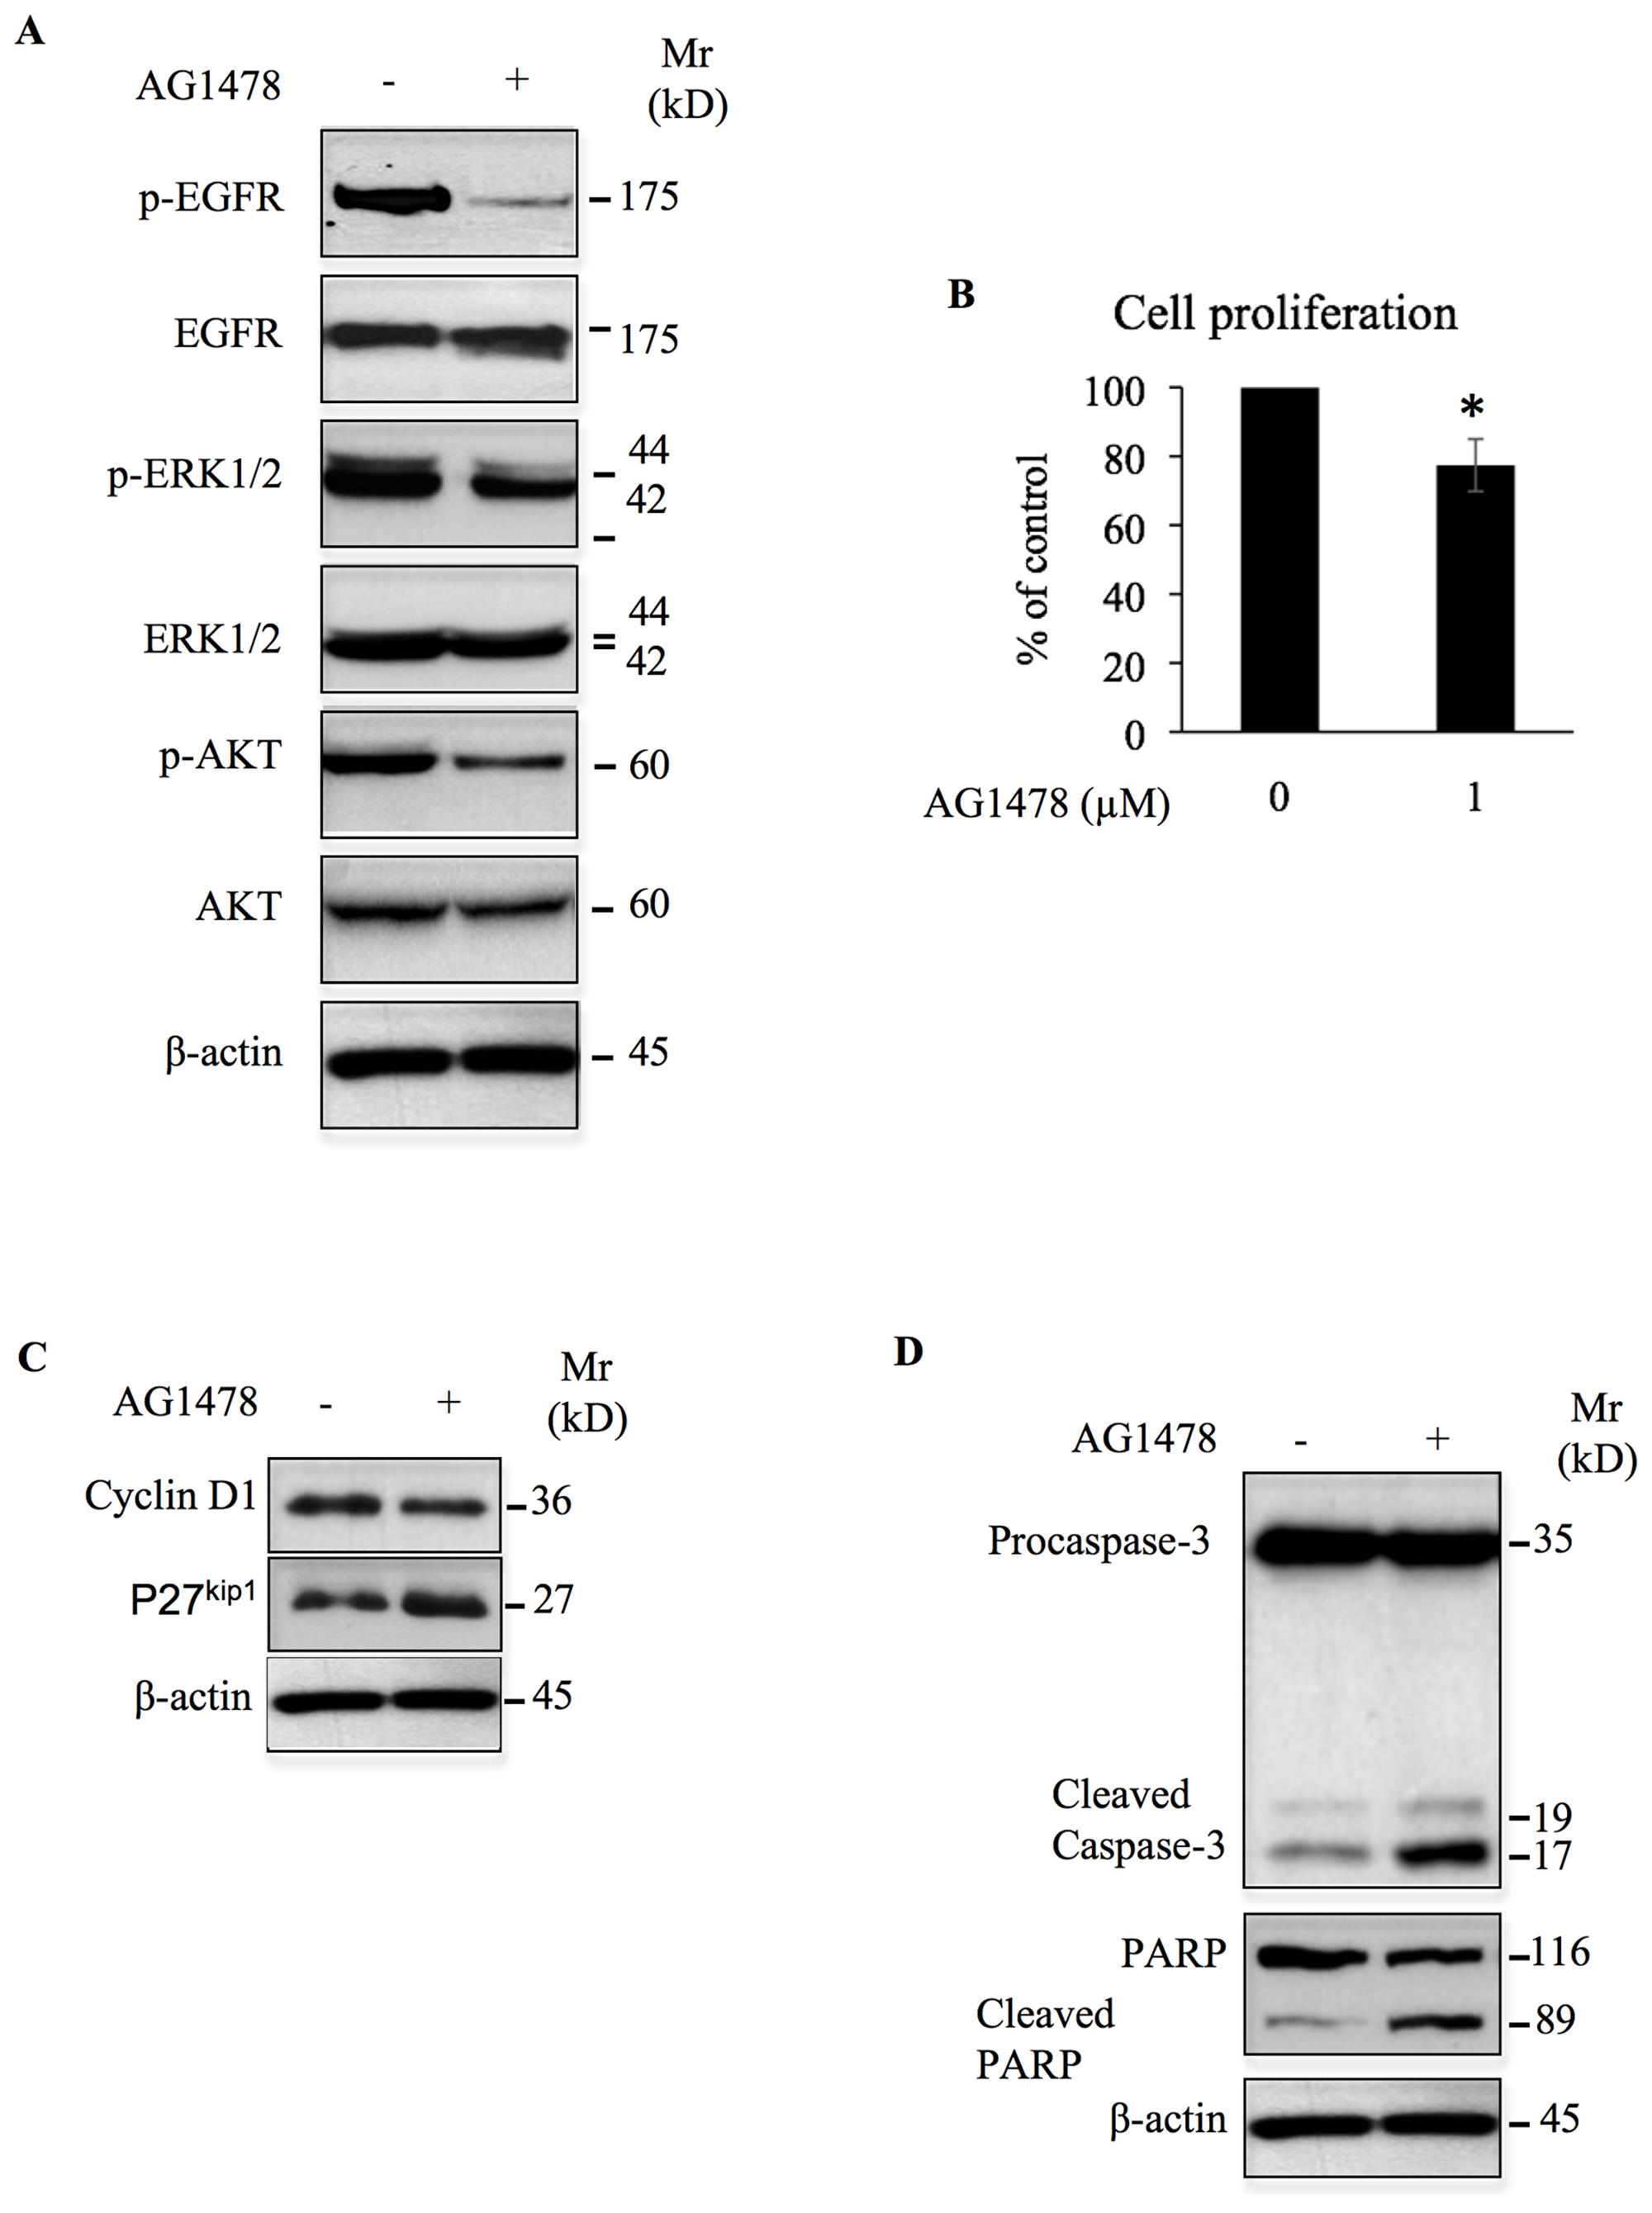 AG1478 inhibits oncogenic signals and cell growth, and induces apoptosis in high-grade chondrosarcoma cells.